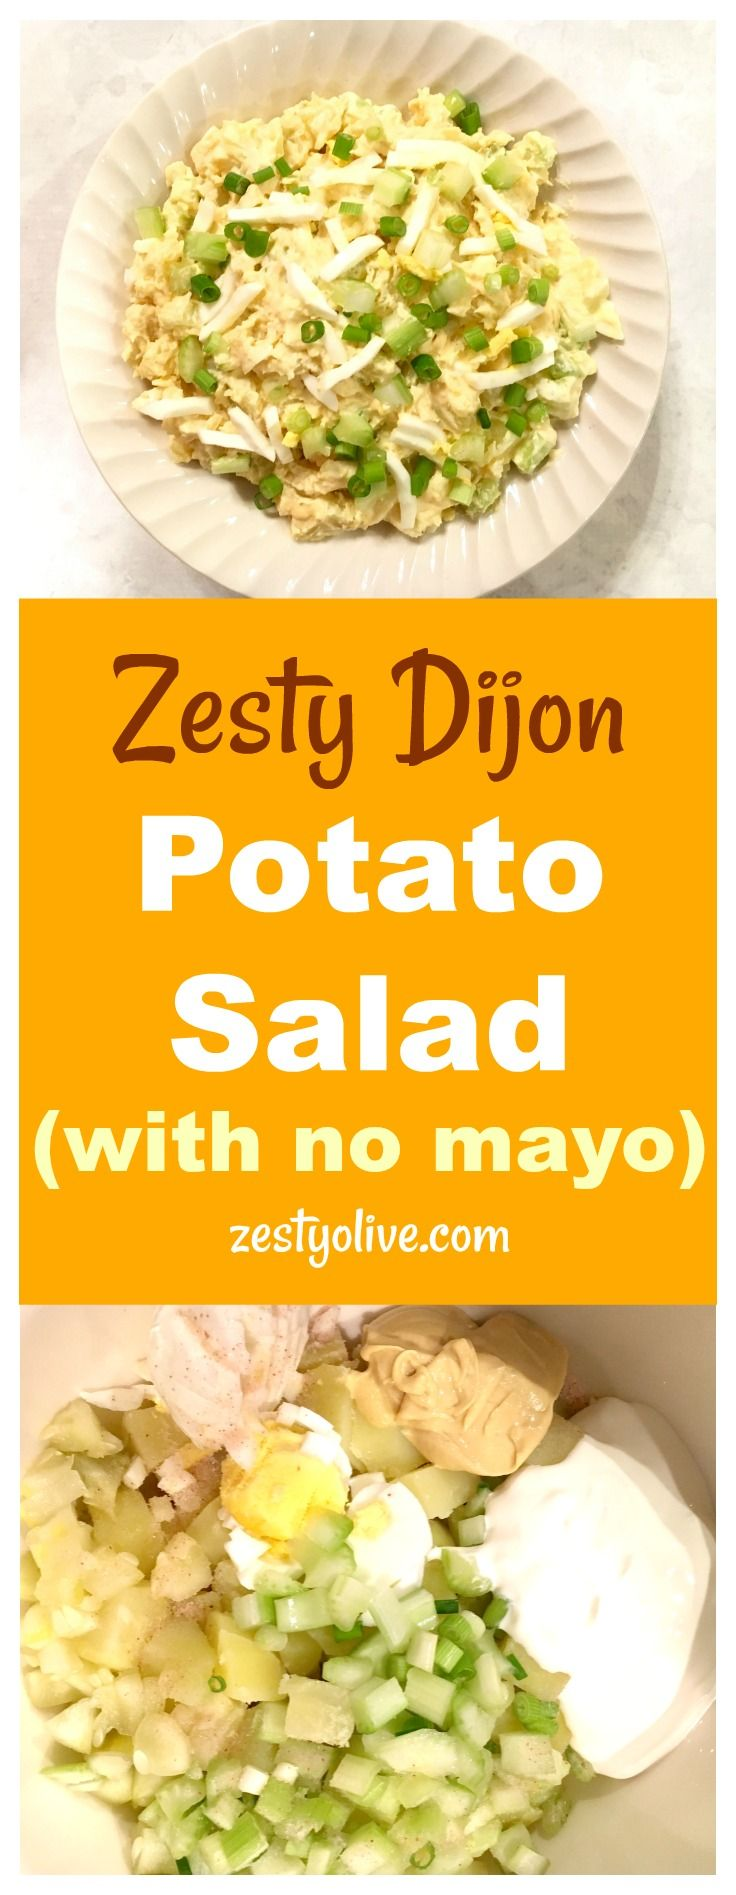 This Easy No Mayo Potato Salad Recipe is will become a favorite at your next picnic, BBQ or potluck. This potato salad is elevated by the spicy addition of Dijon mustard. Sour cream replaces the mayonnaise and the addition of egg, celery, green onions and dill pickle make this a zesty potato salad worthy of your next gathering. #potatosalad #dijon #food #salads #recipes #easyrecipes